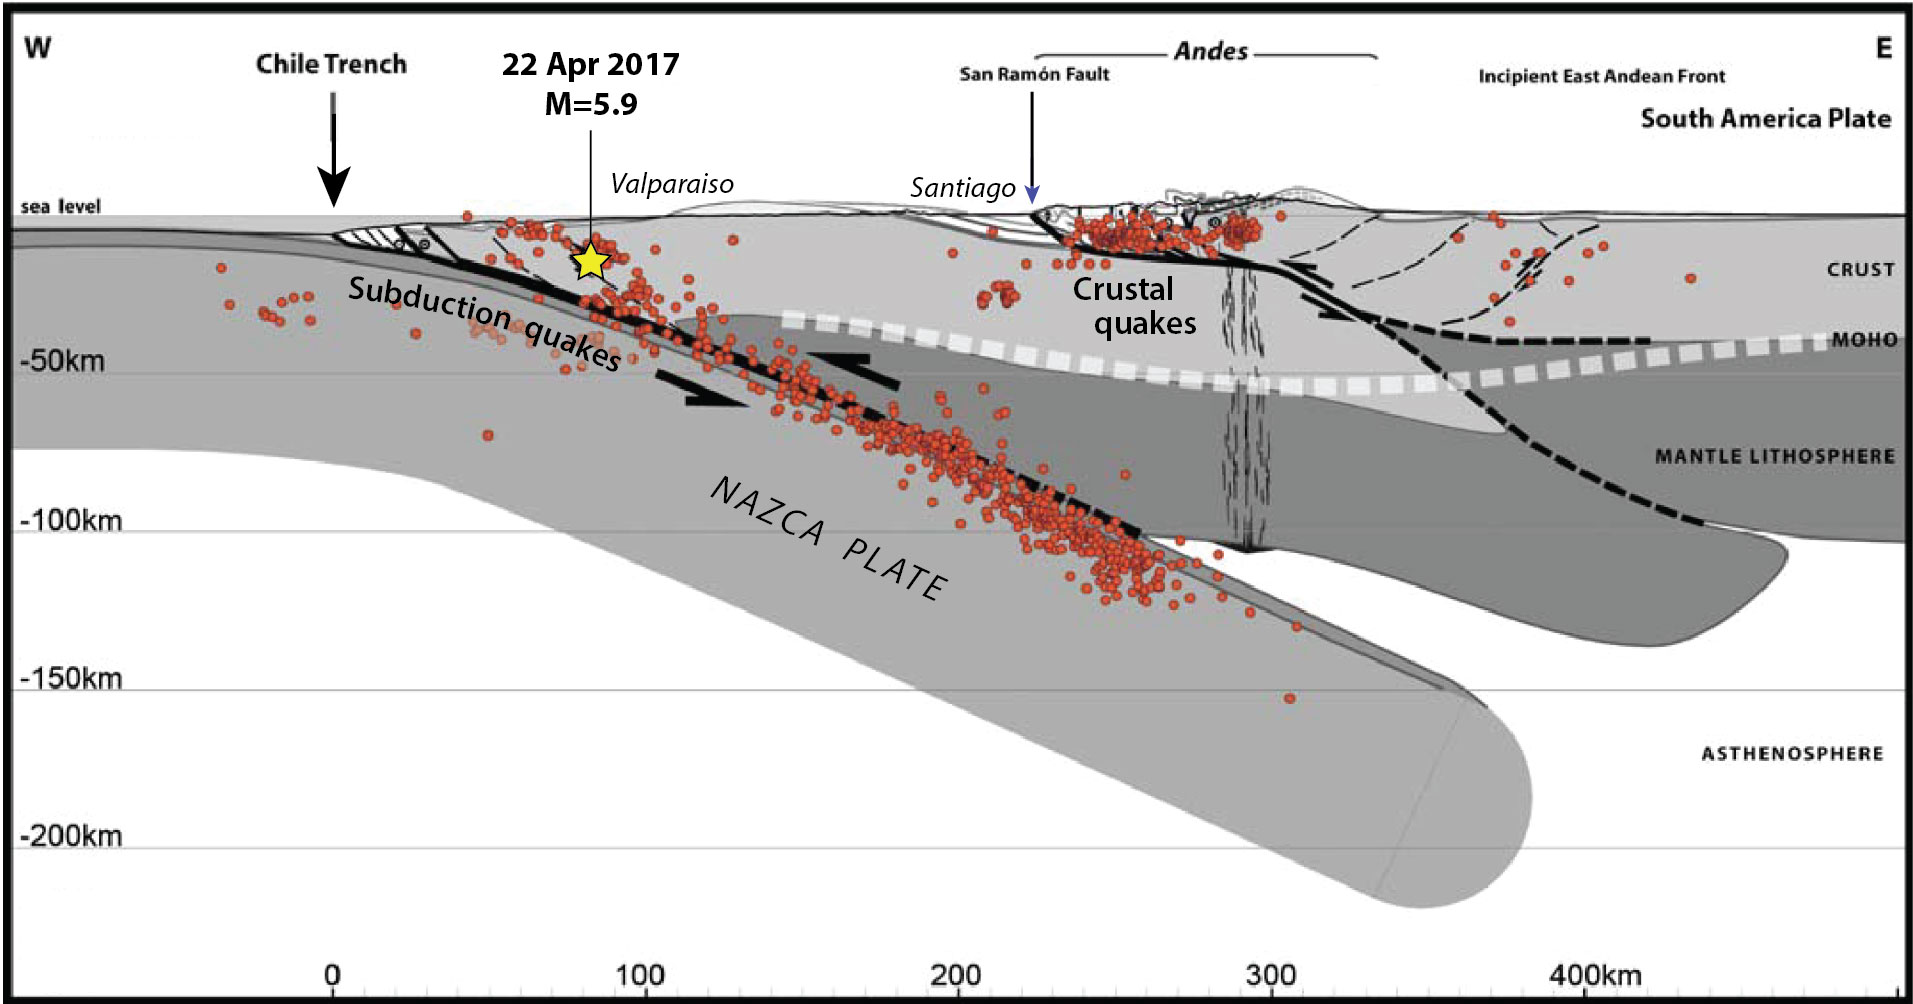 Subduction of the Nazca plate beneath the deformed and faulted South American plate, from Armijo et al. (2010). Santiago lies at the foot of the Andes. The red dots show the best-located M≥4.0 earthquakes during the period, 2000–2005, by Servicio Sismológico Nacional of Universidad de Chile.